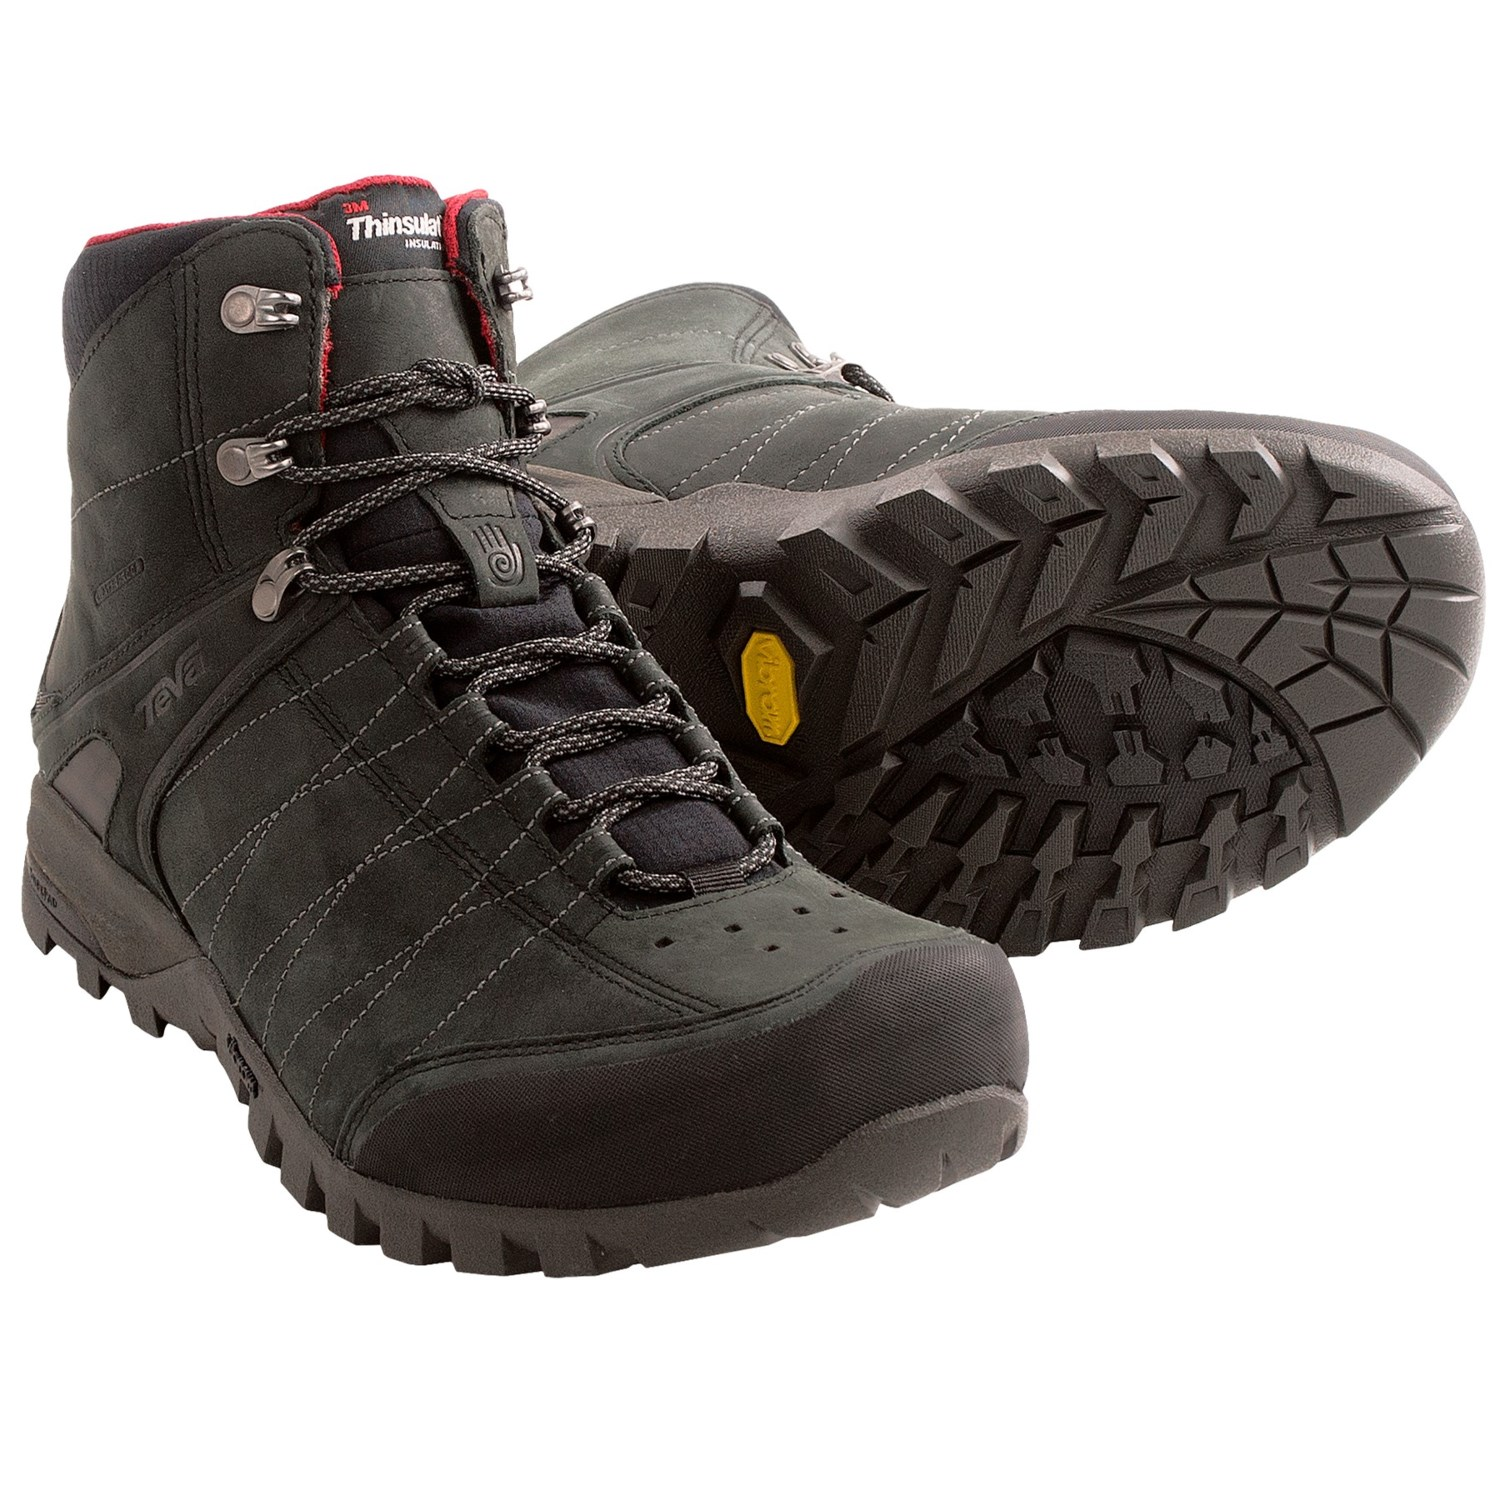 Teva Riva Winter Mid Hiking Boots (For Men) 8394Y